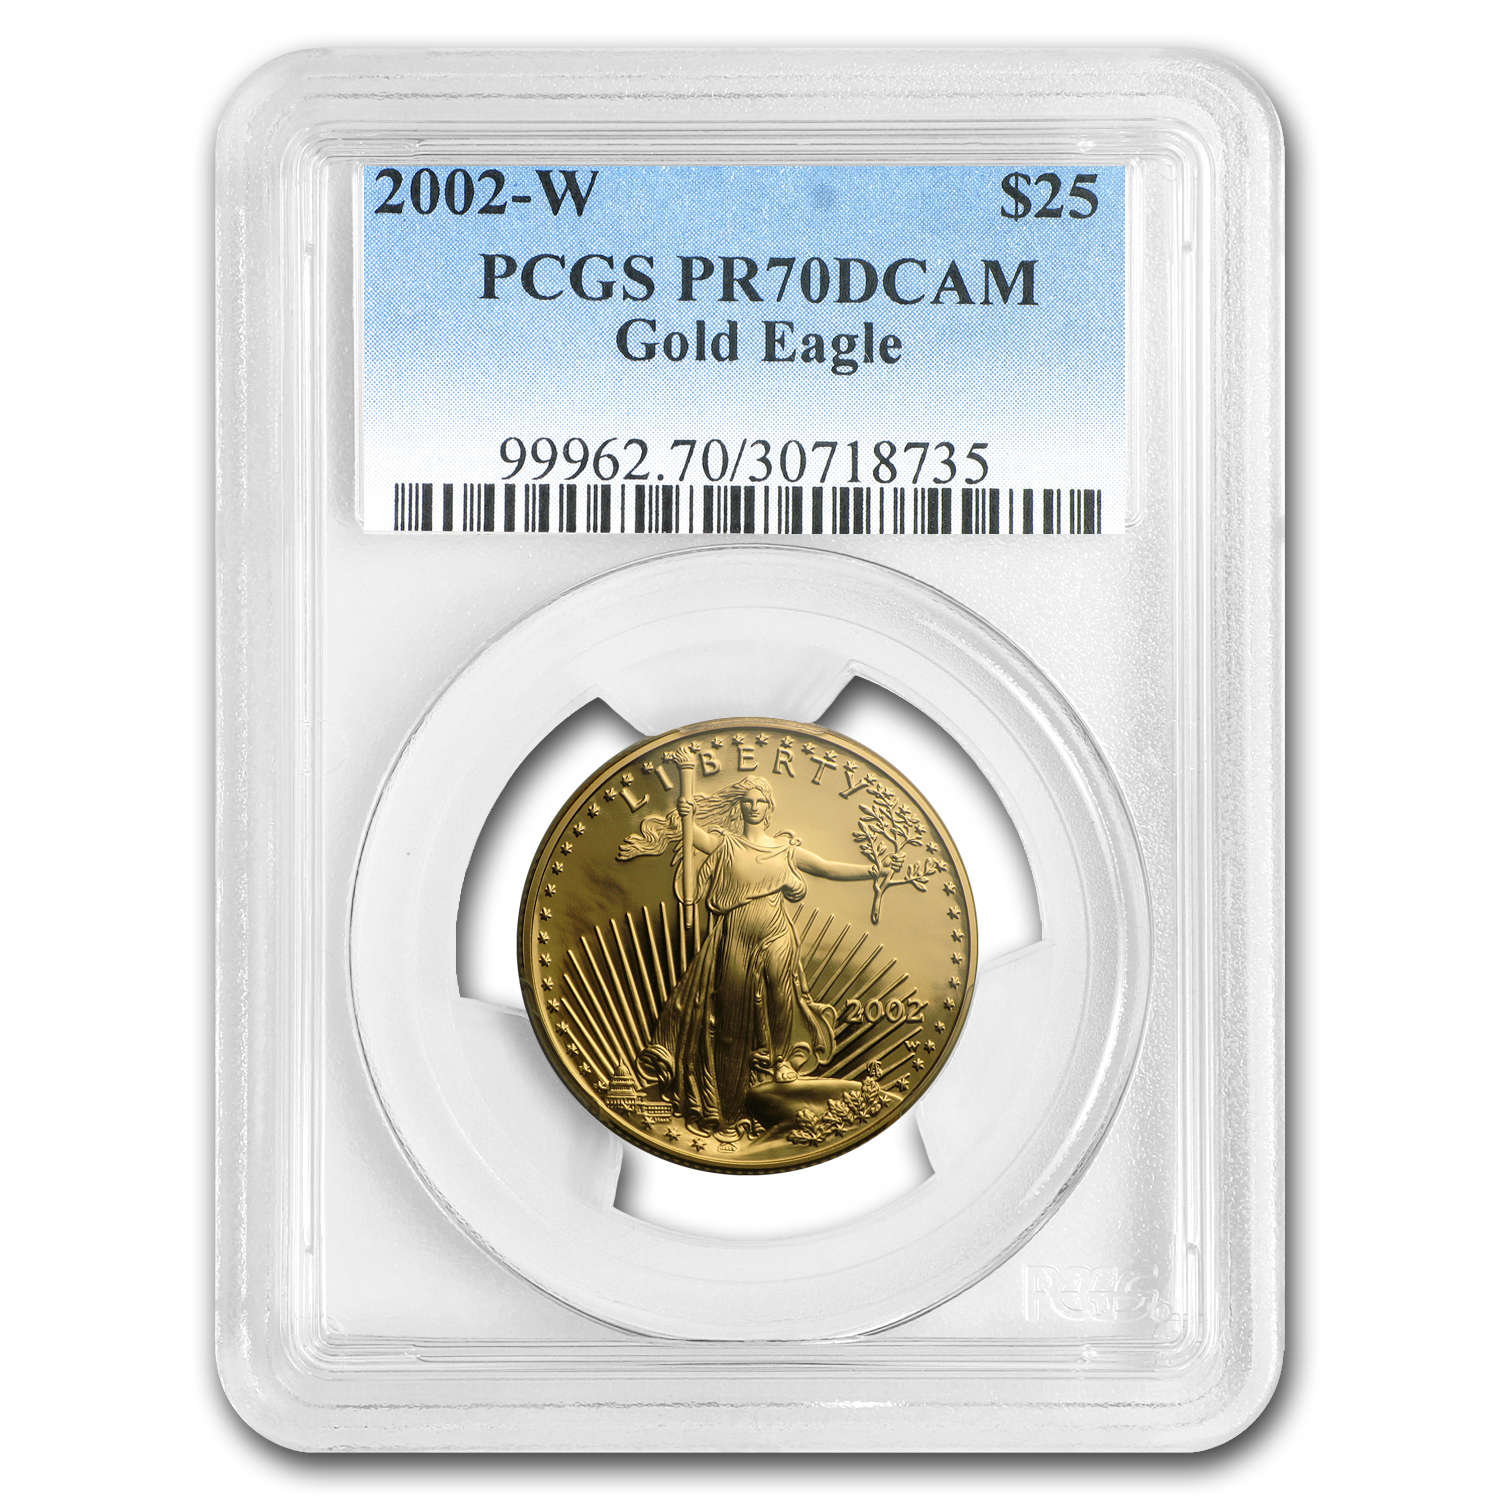 2002-W 1/2 oz Proof Gold American Eagle PR-70 PCGS